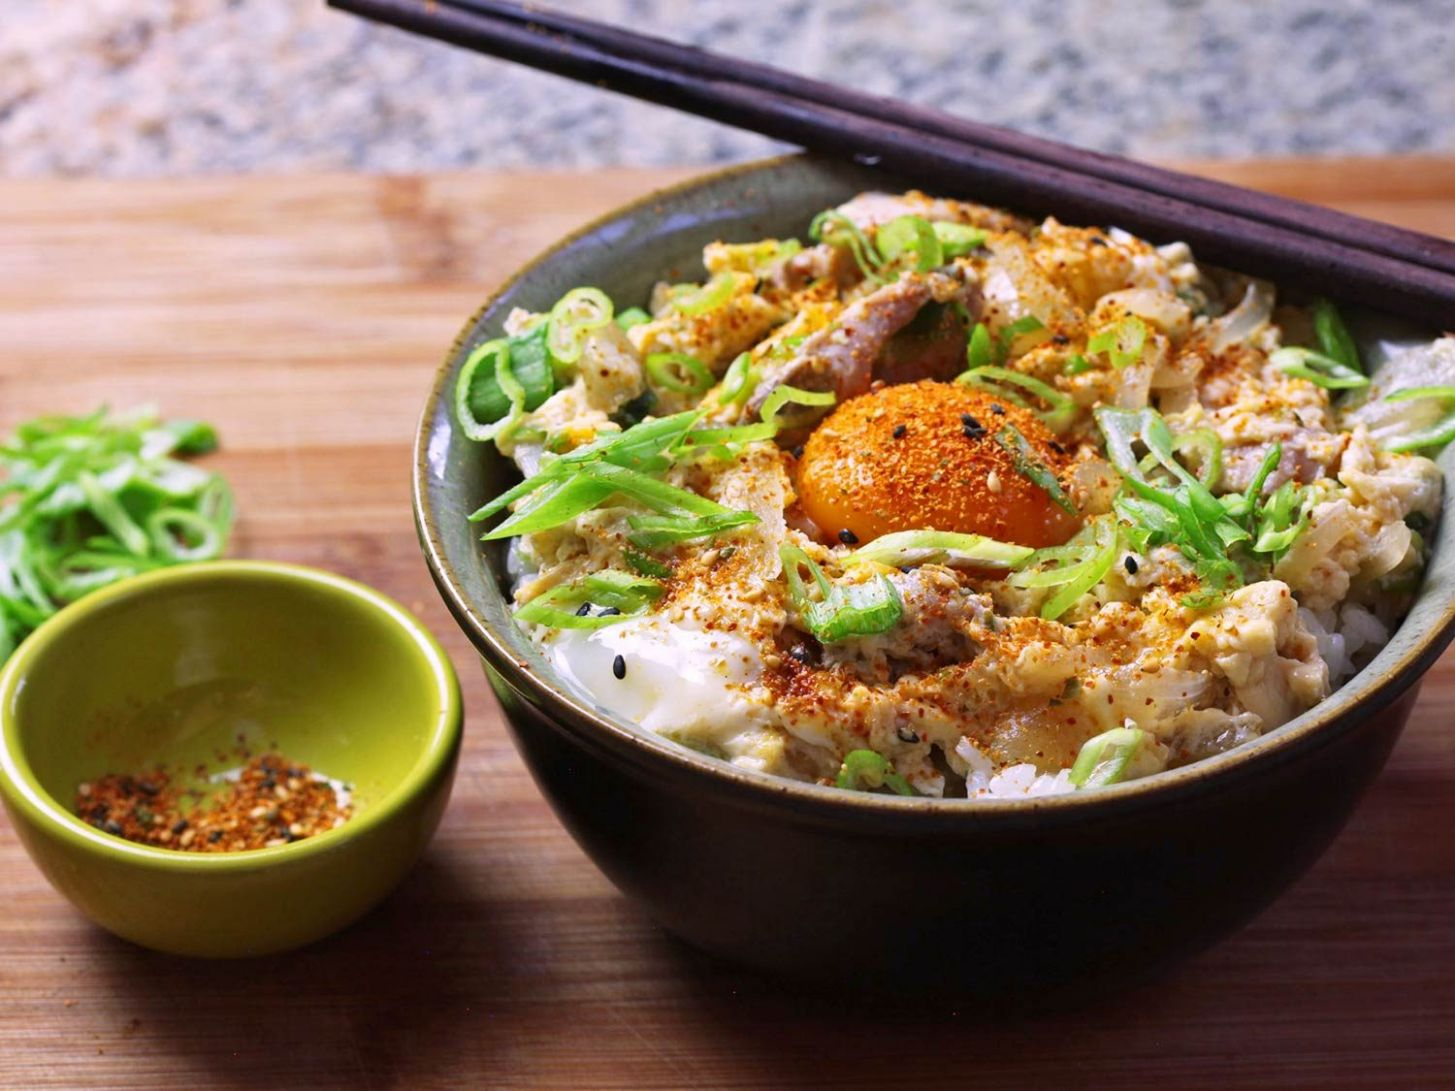 Oyakodon (Japanese Chicken and Egg Rice Bowl) Recipe